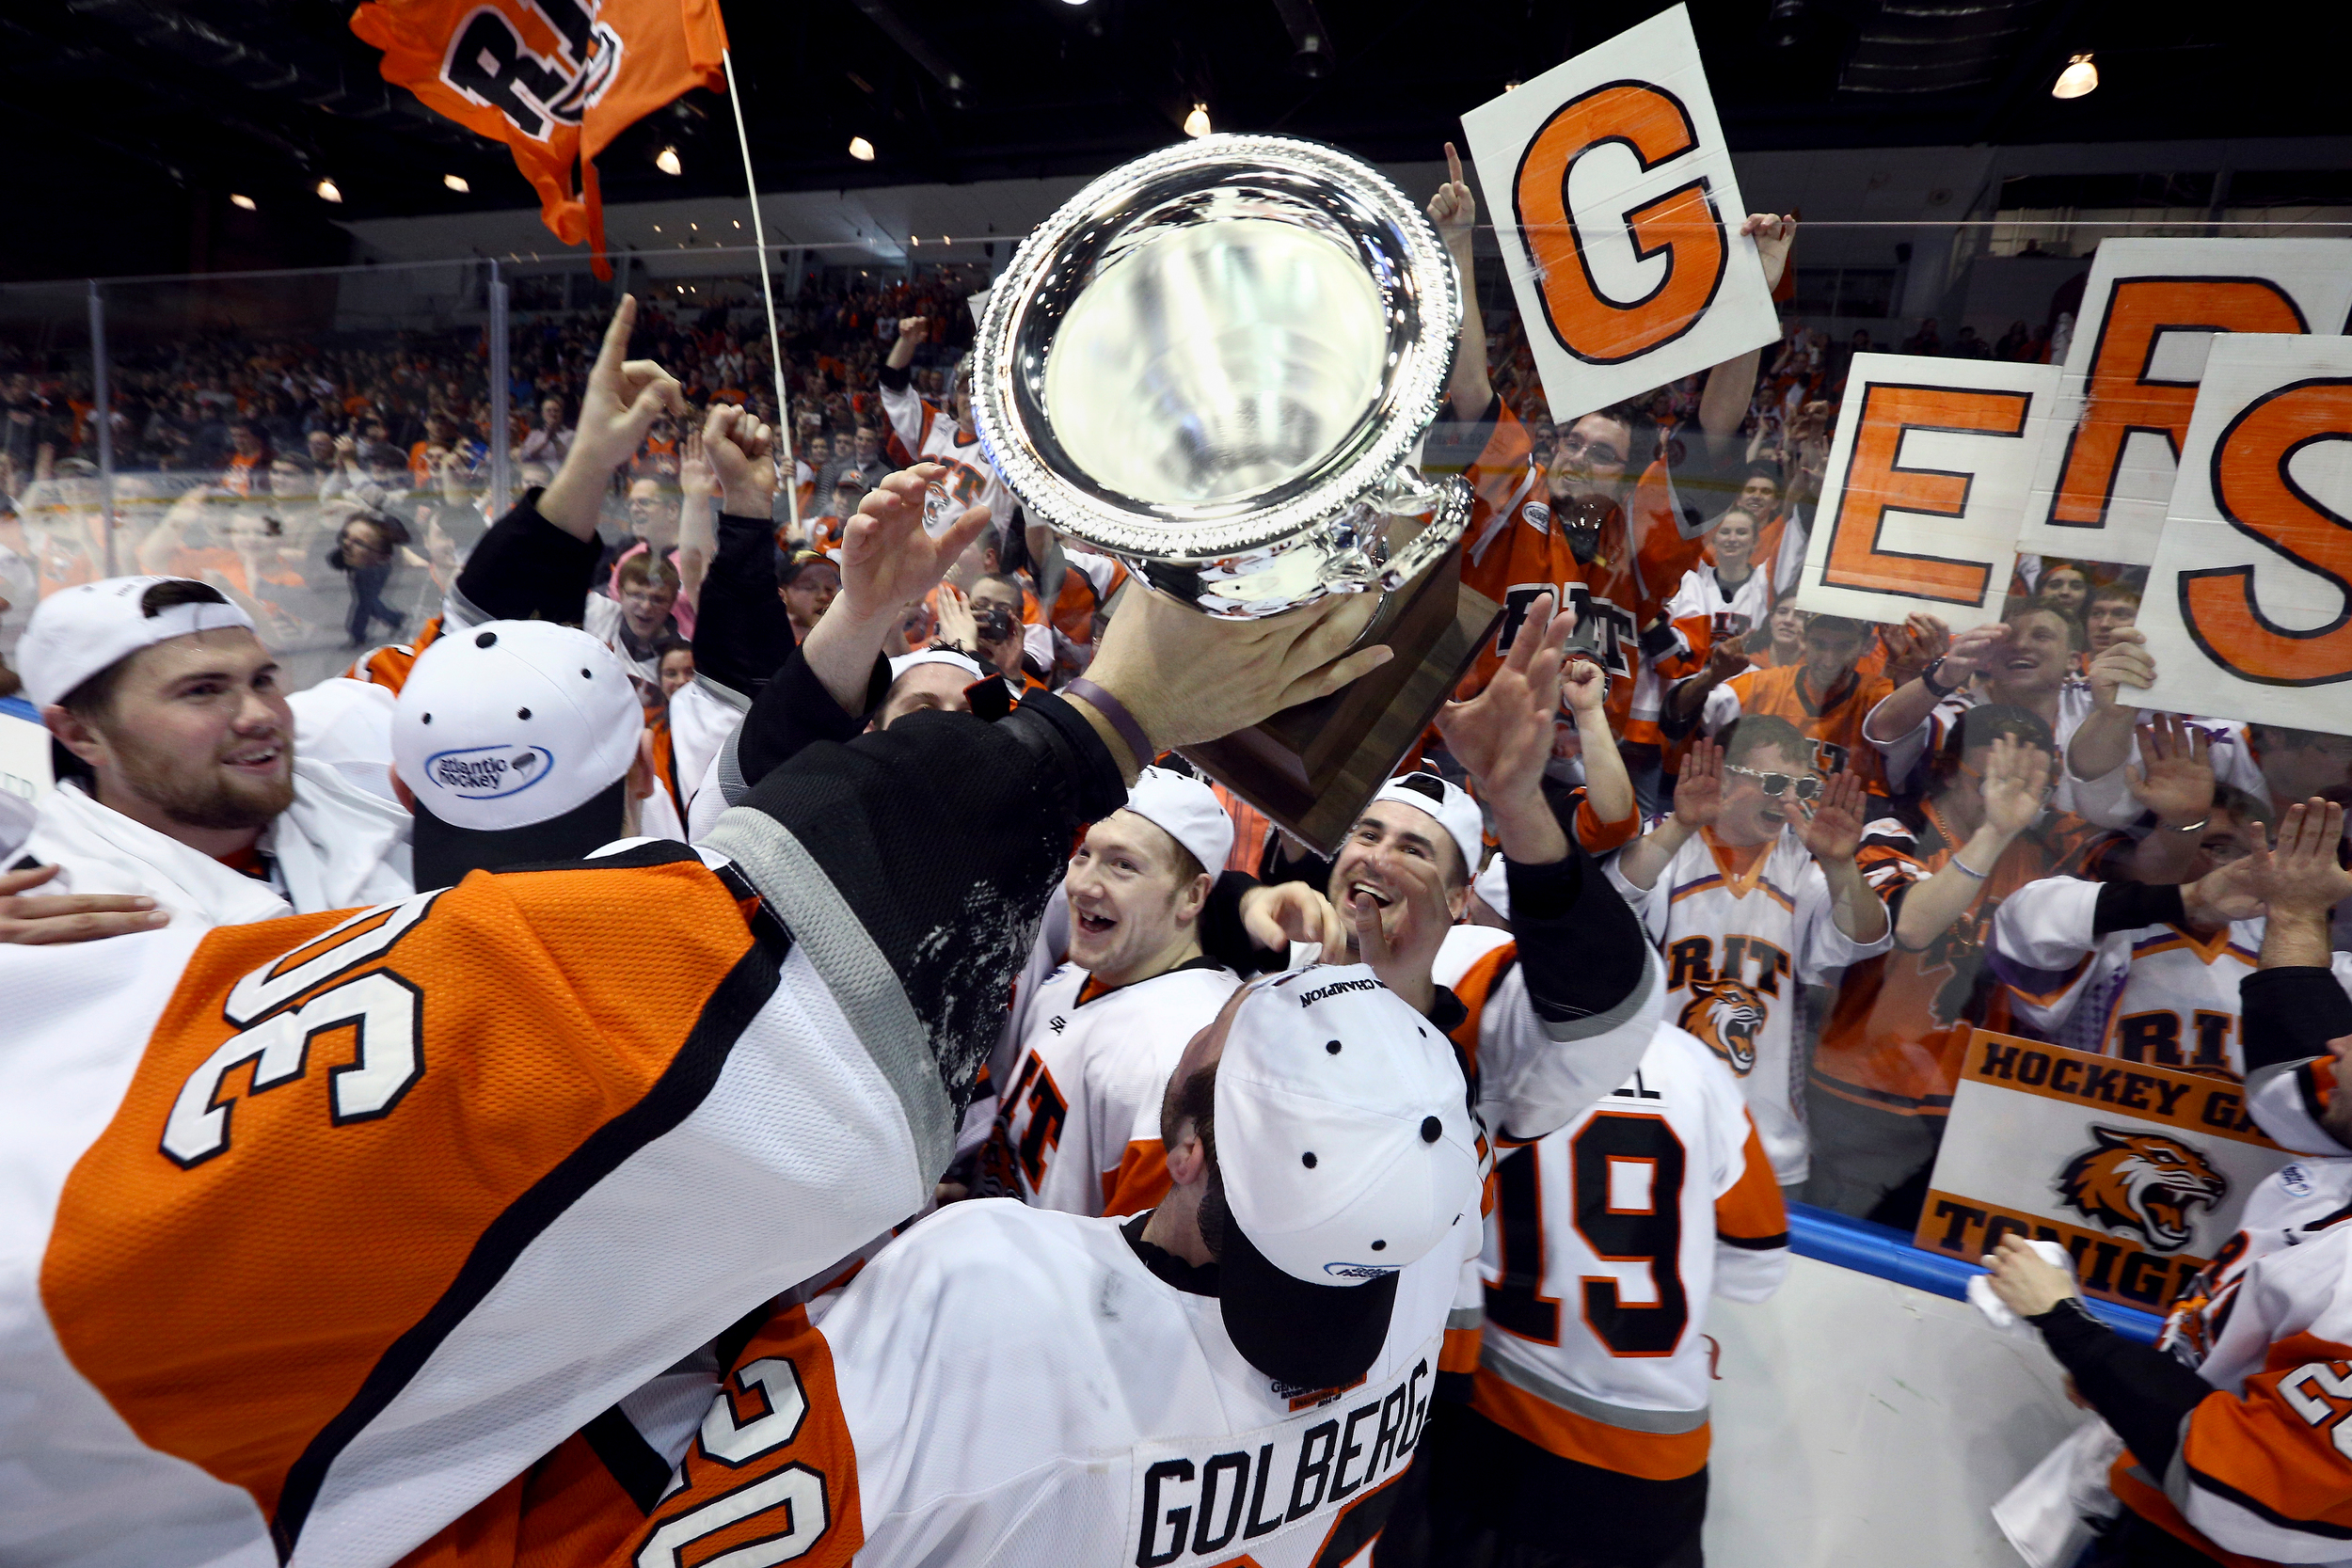 Rochester Institute of Technology men's hockey team celebrate while holding the Atlantic Hockey Conference championship trophy after defeating Mercyhurst University 5-1 at Blue Cross Arena on March 21, 2015 in Rochester, N.Y.